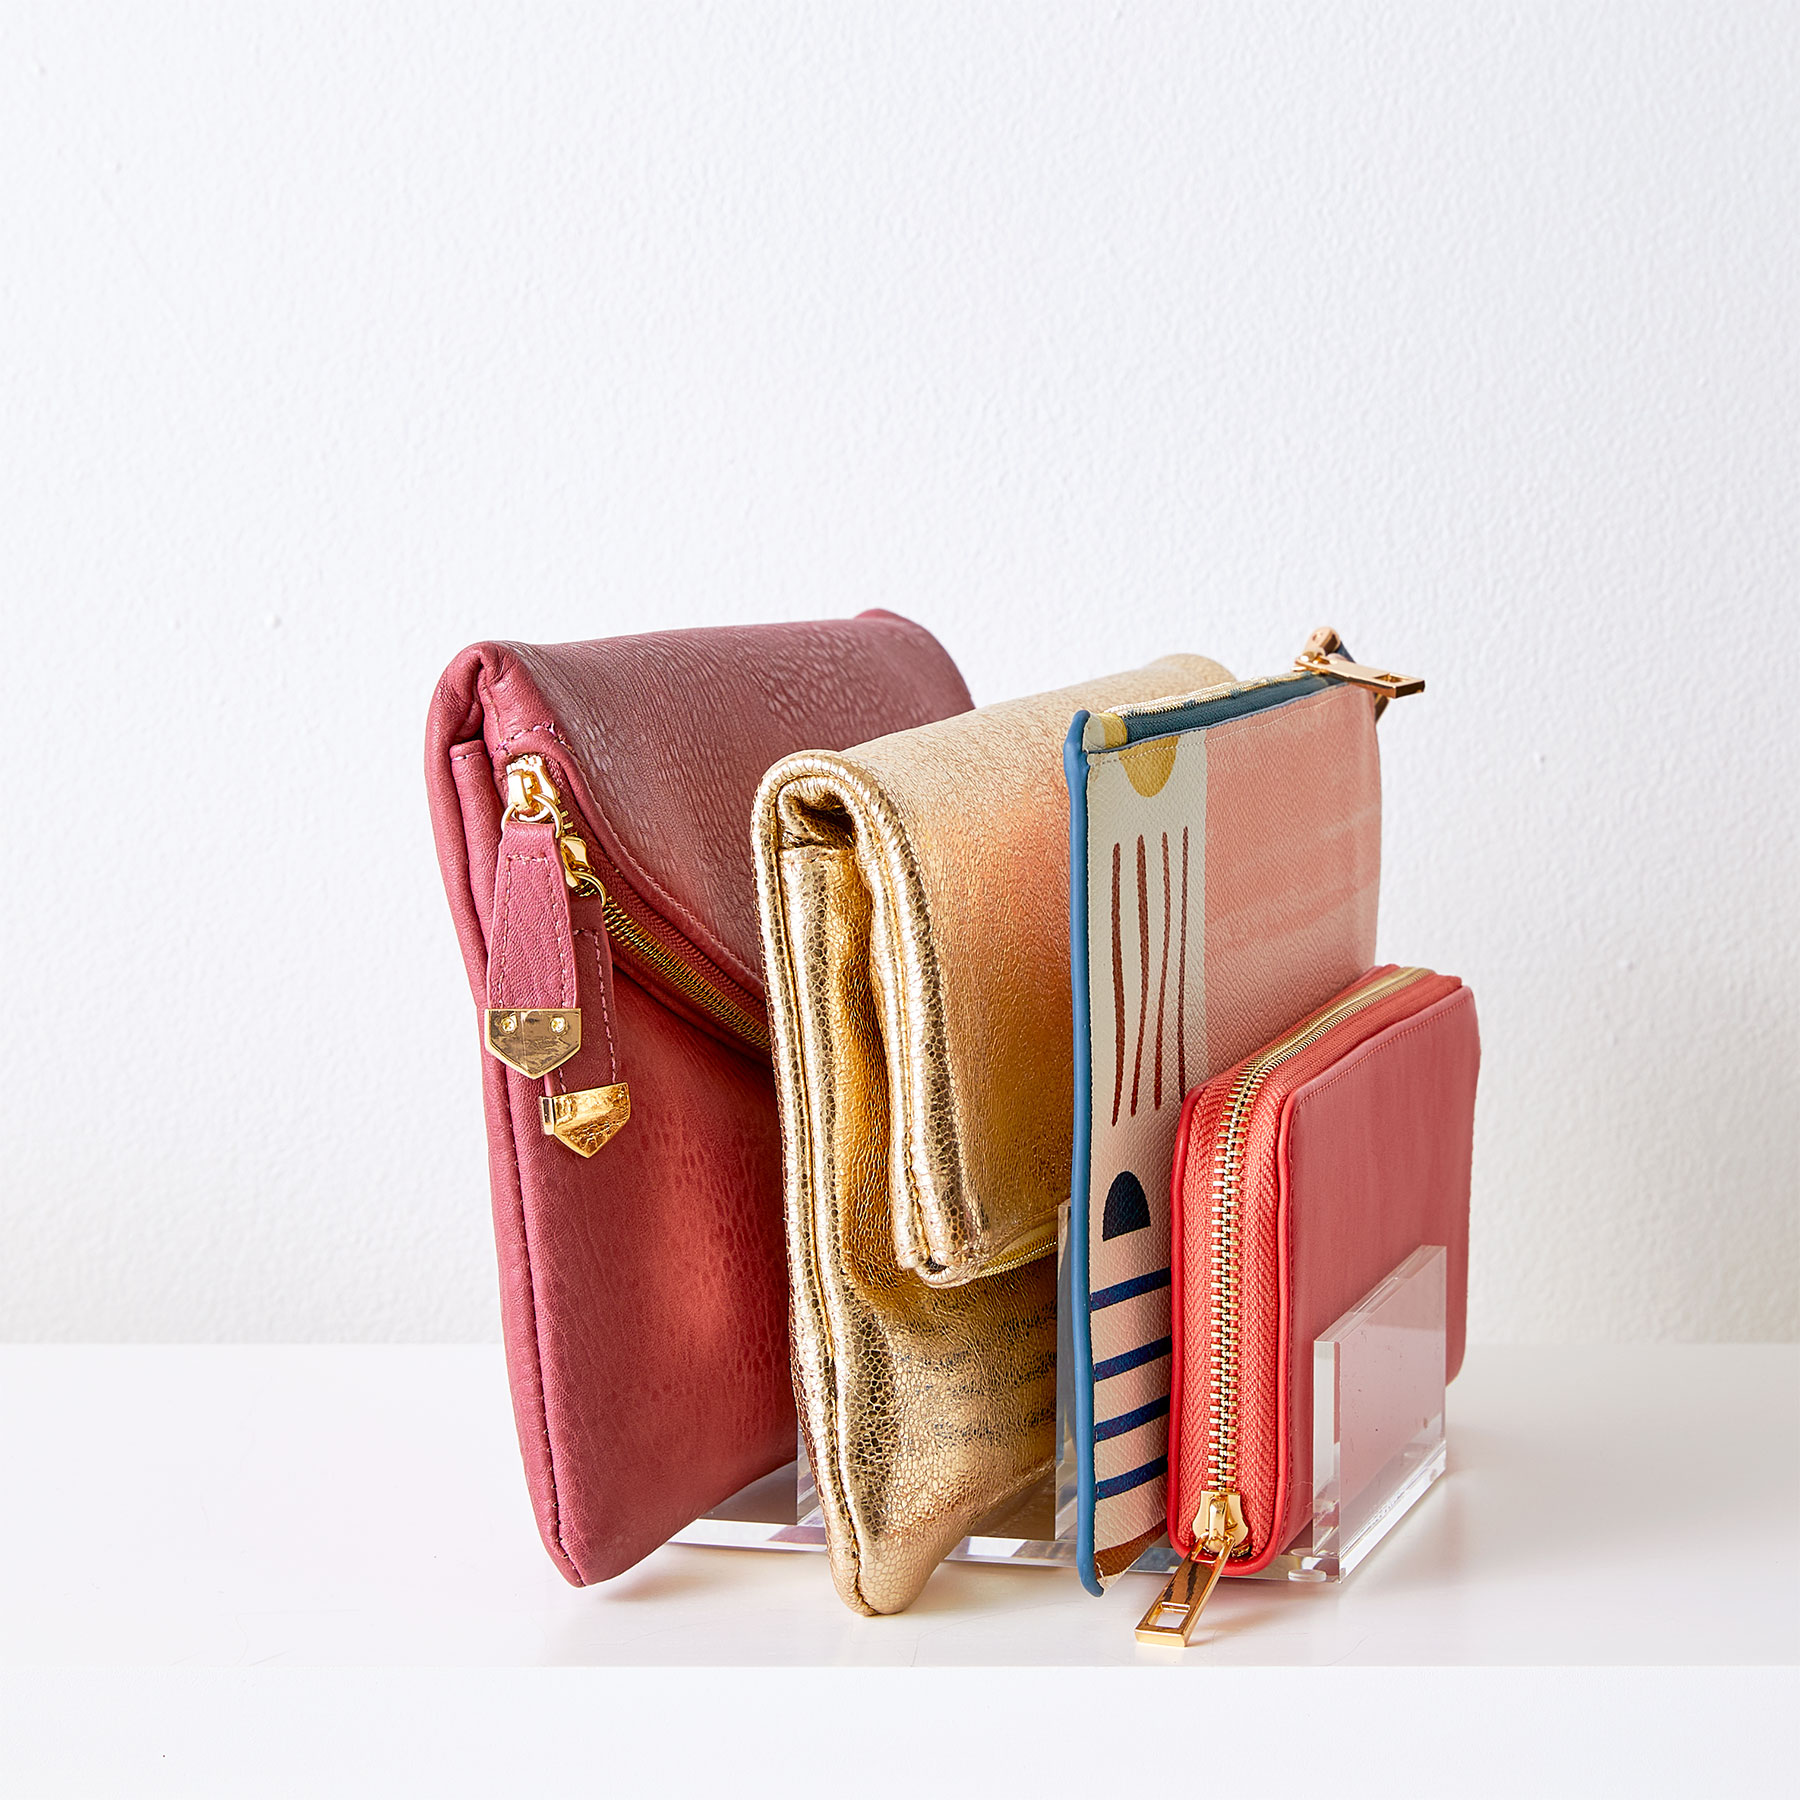 How to Organize Bags: Corral Clutches